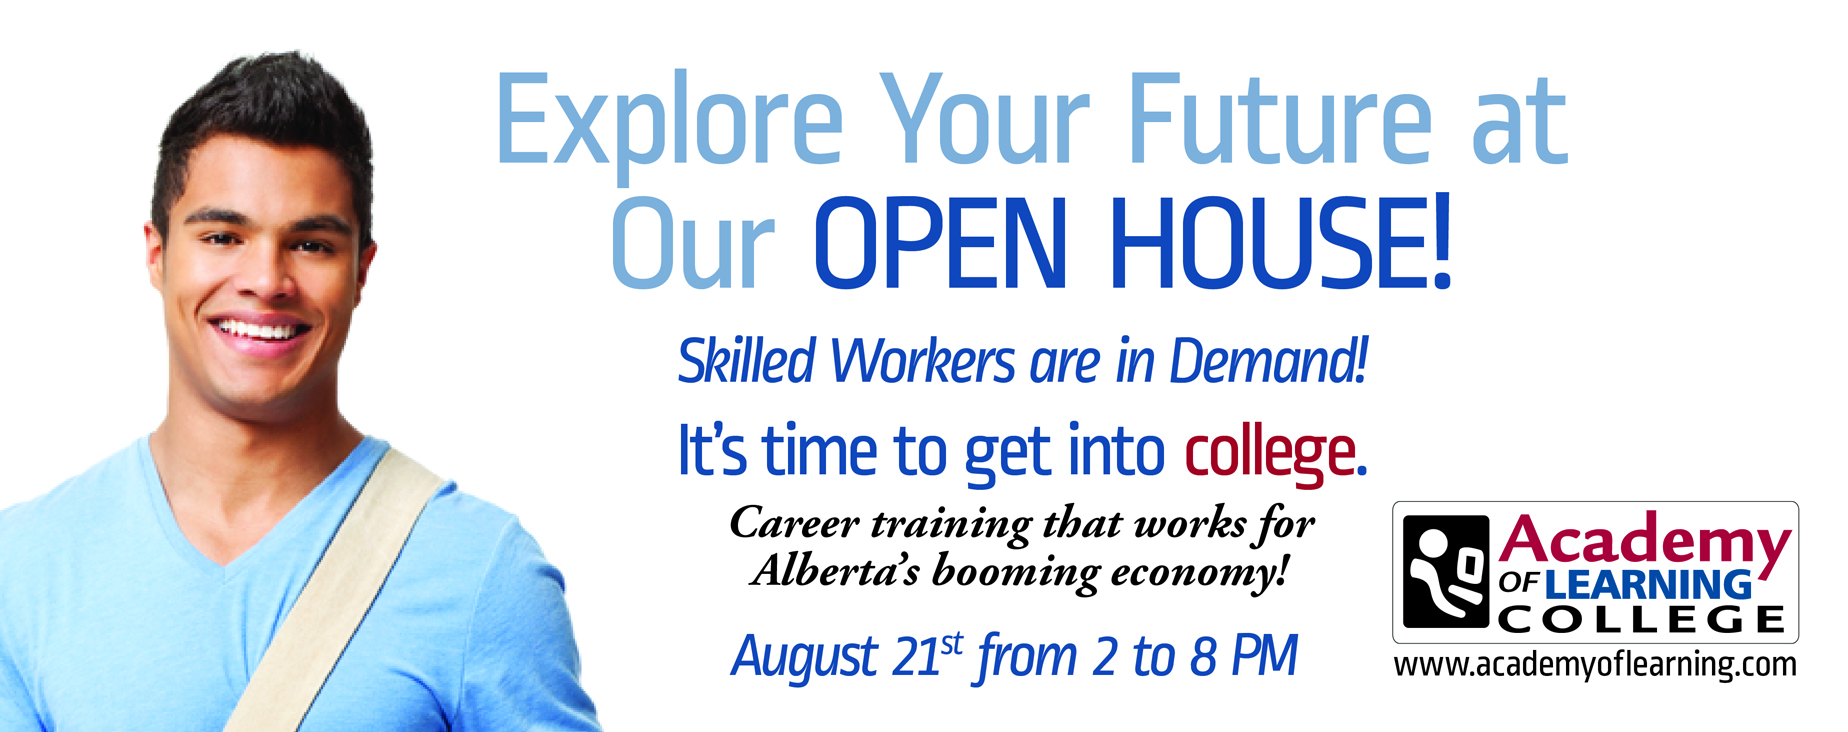 Join us at our open houses on August 21st from 2-8 pm.